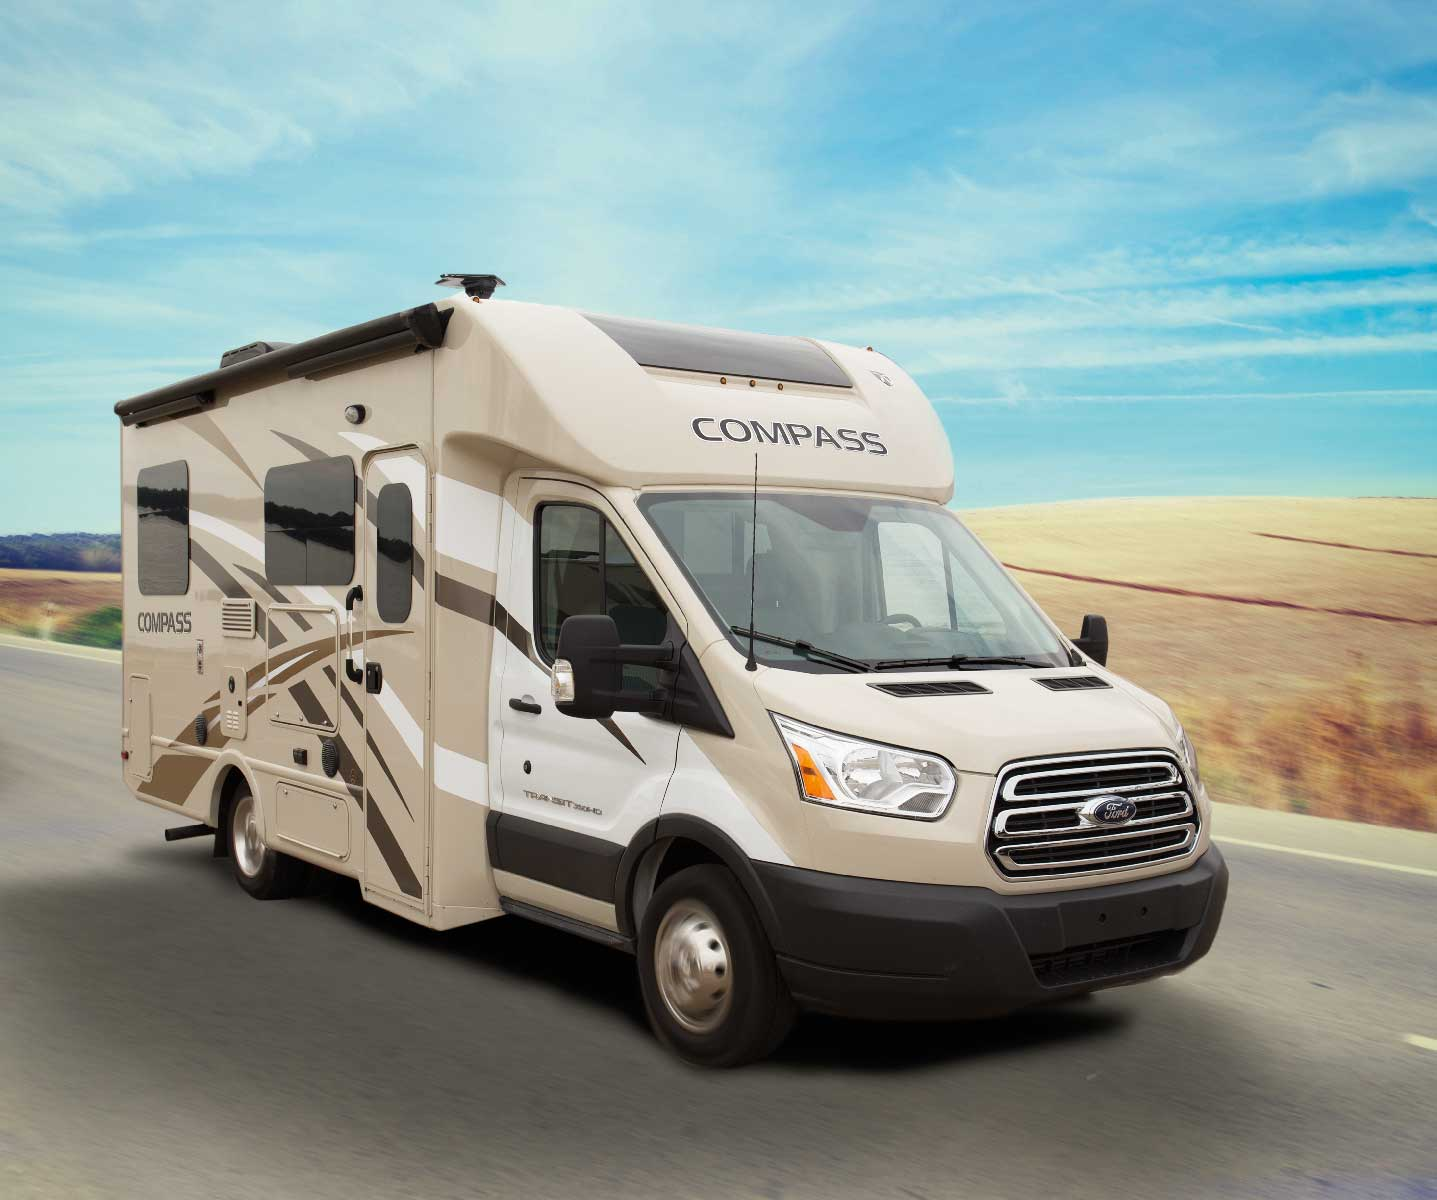 Thor Motor Coach Gears Up for 2016 RV Show Season